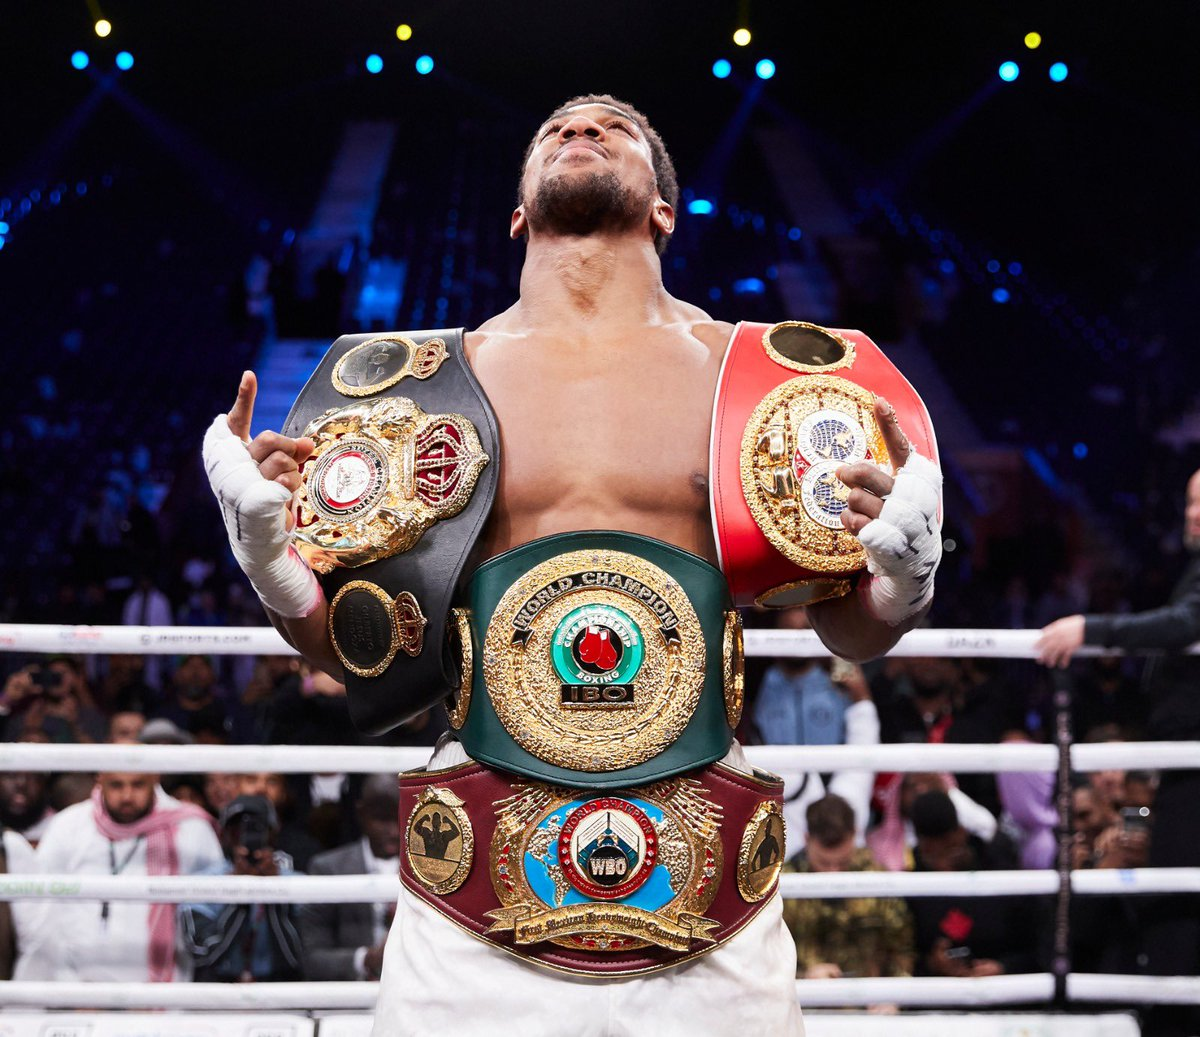 World Champion Joshua to present his world titles to President Buhari